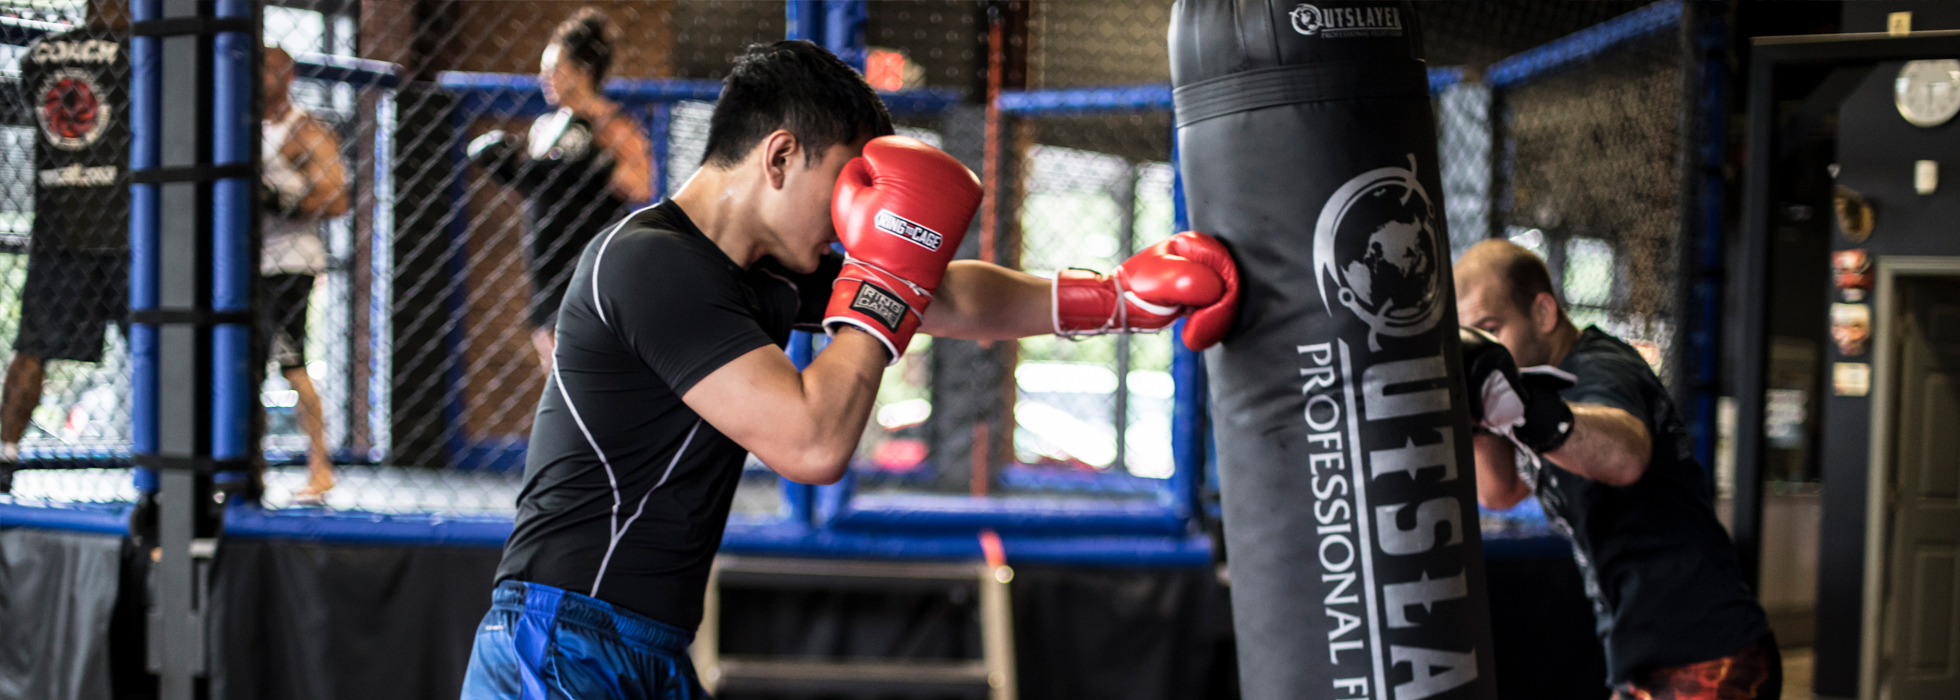 Boxing Training near Atlanta GA, Boxing Training near Cartersville GA, Boxing Training near Chamblee GA, Boxing Training near Midtown Atlanta GA, Boxing Training near Sandy Springs GA, Boxing Training near Dacula GA